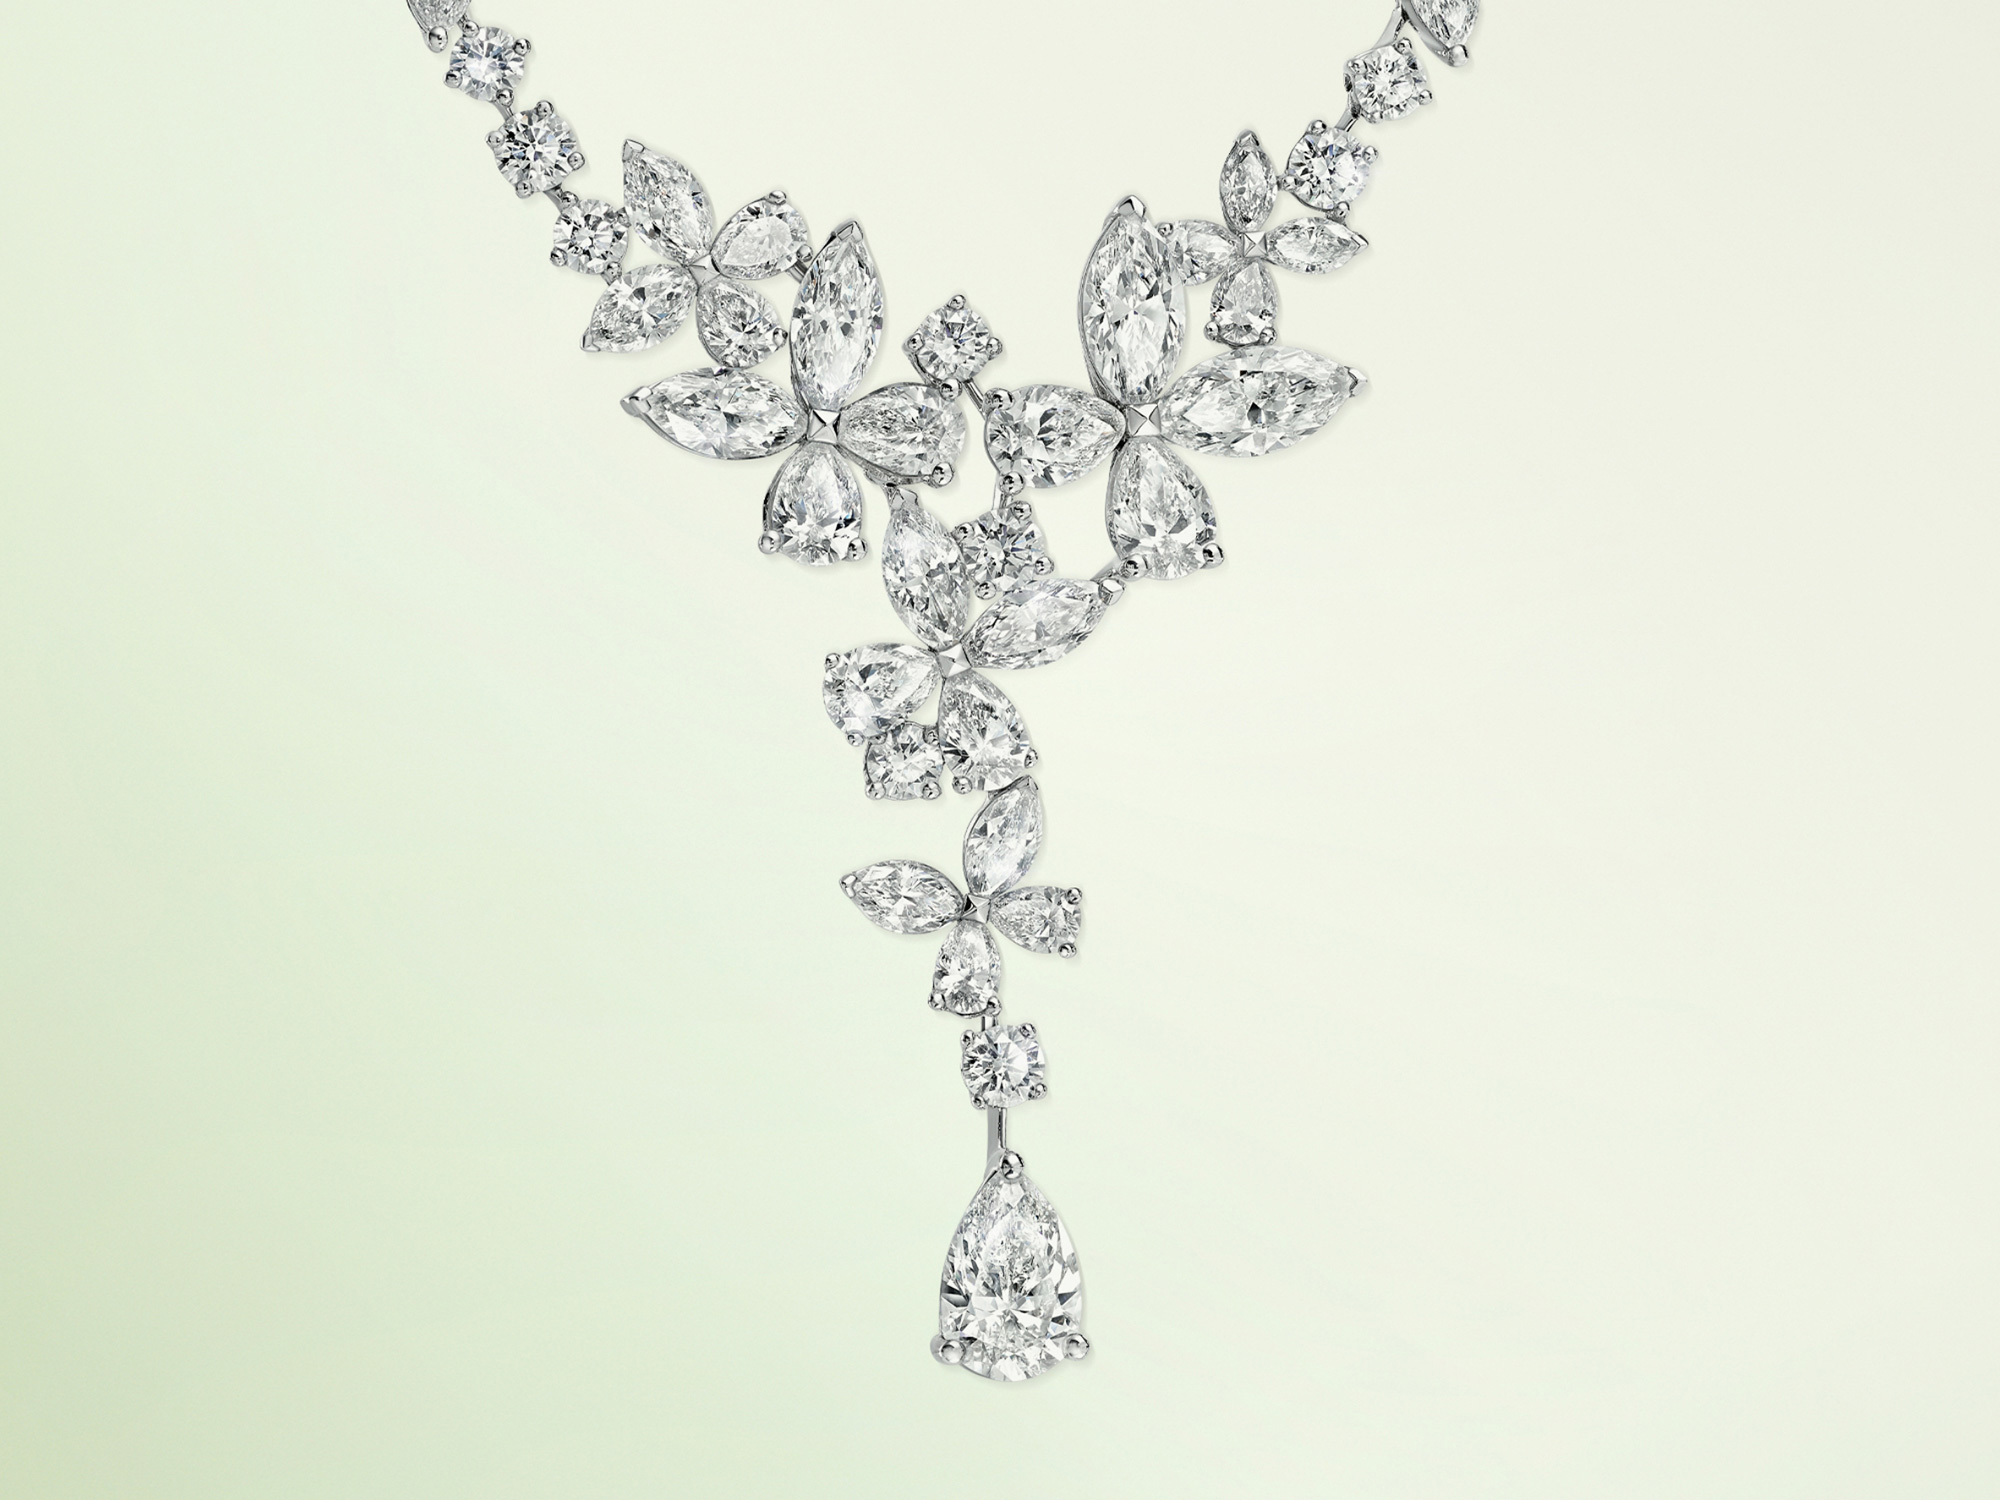 Graff Classic Butterfly Diamond Necklace from the Graff jewellery collection